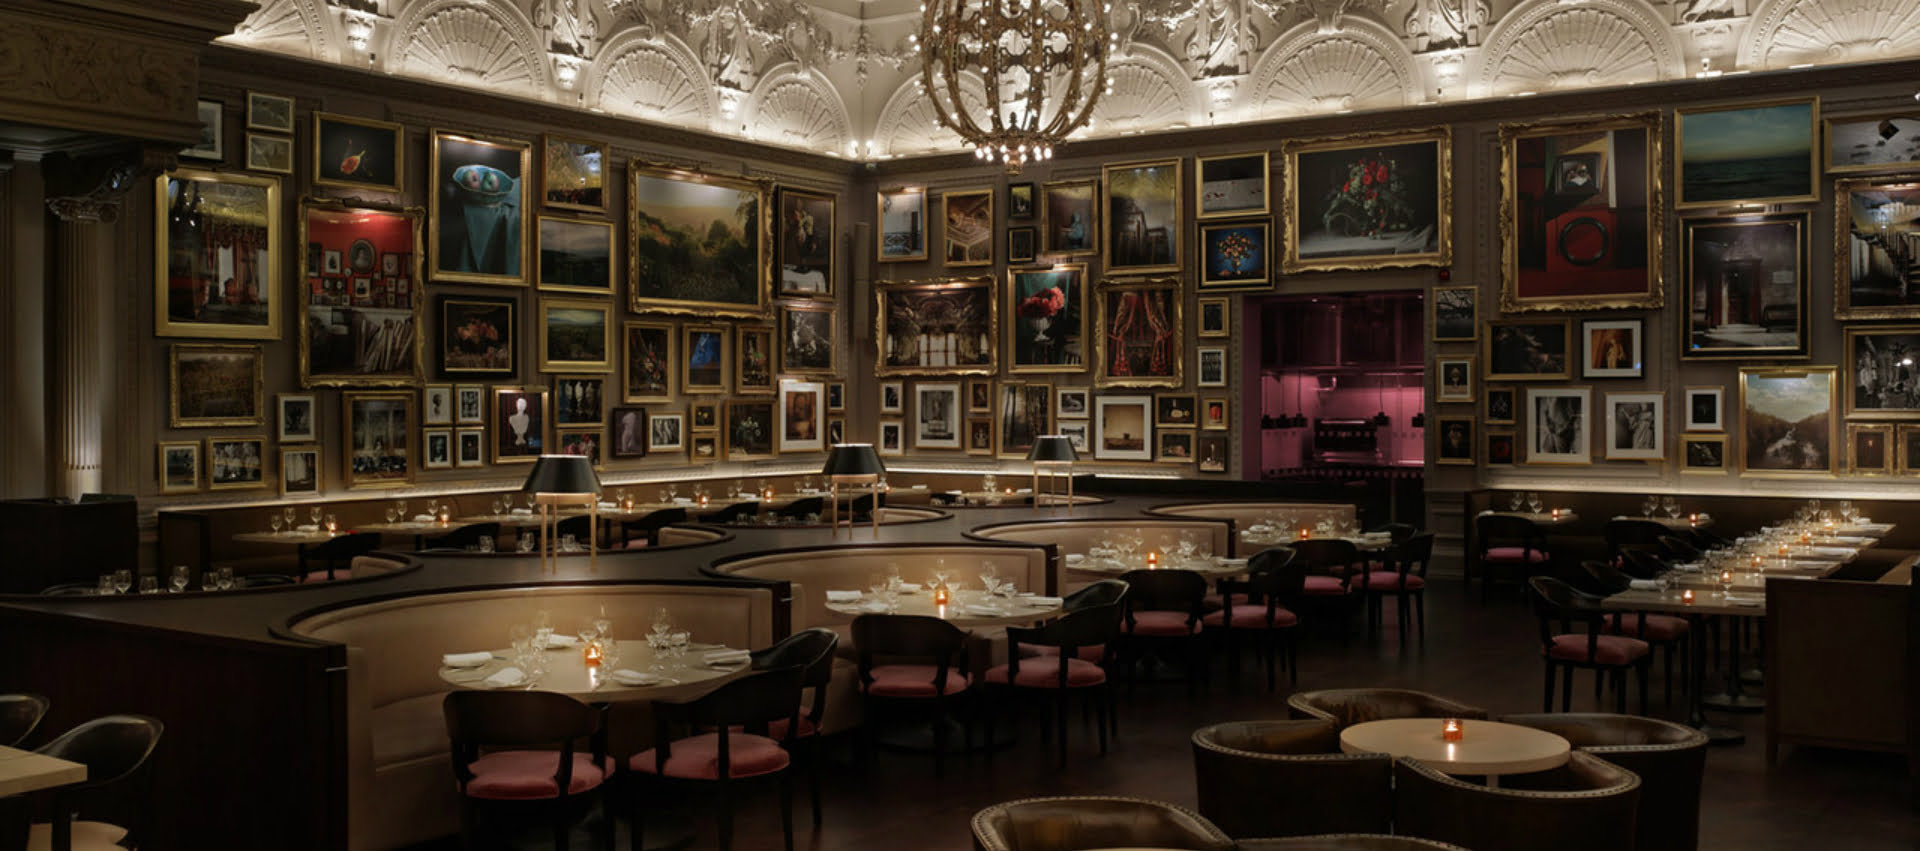 Best Restaurants In Central London  Handpicked By The Nudge